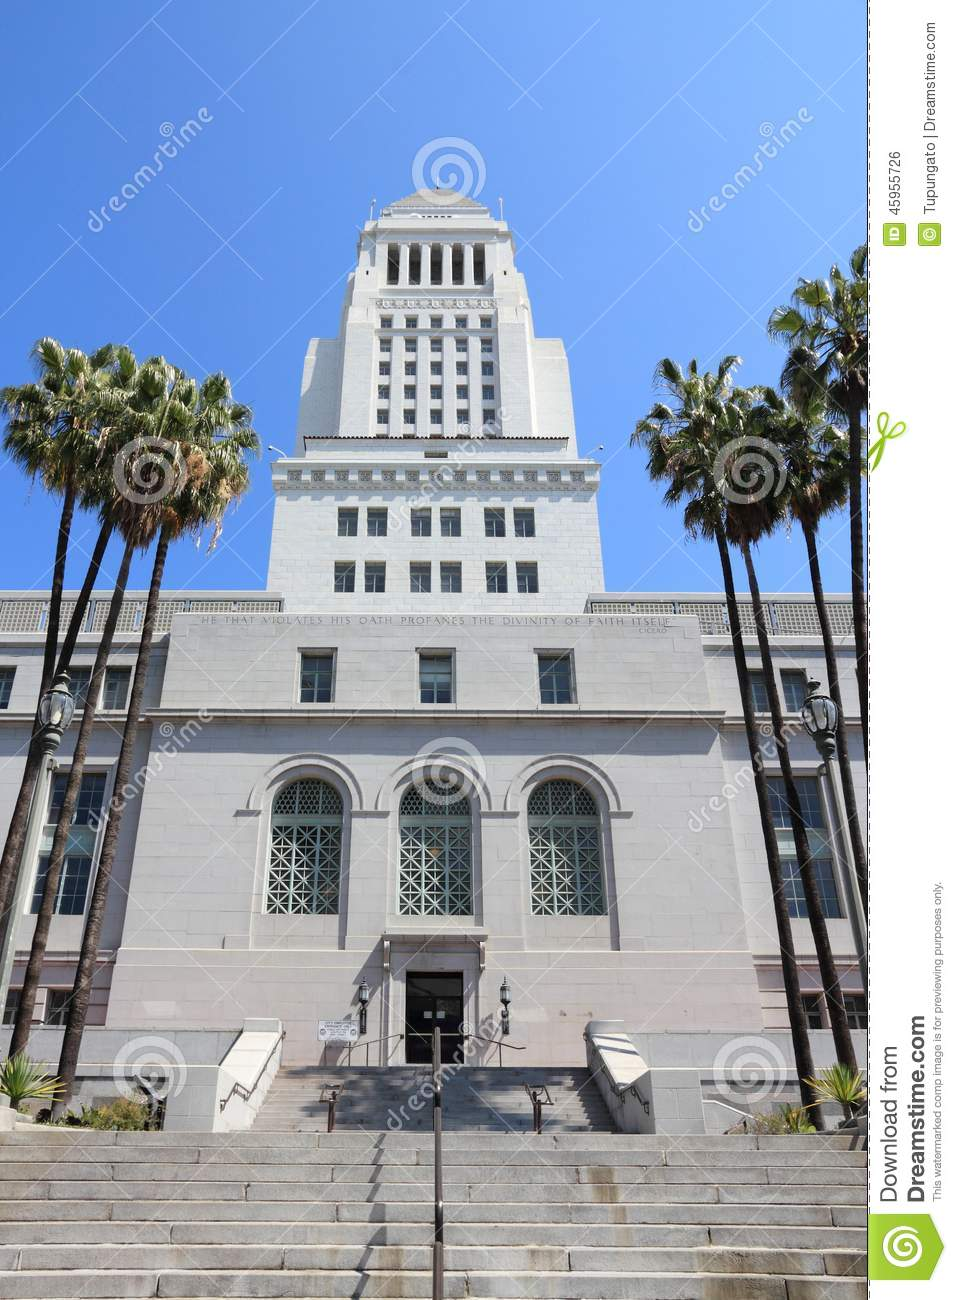 Los angeles ca united states pictures citiestips com - Los Angeles California United States City Hall Building